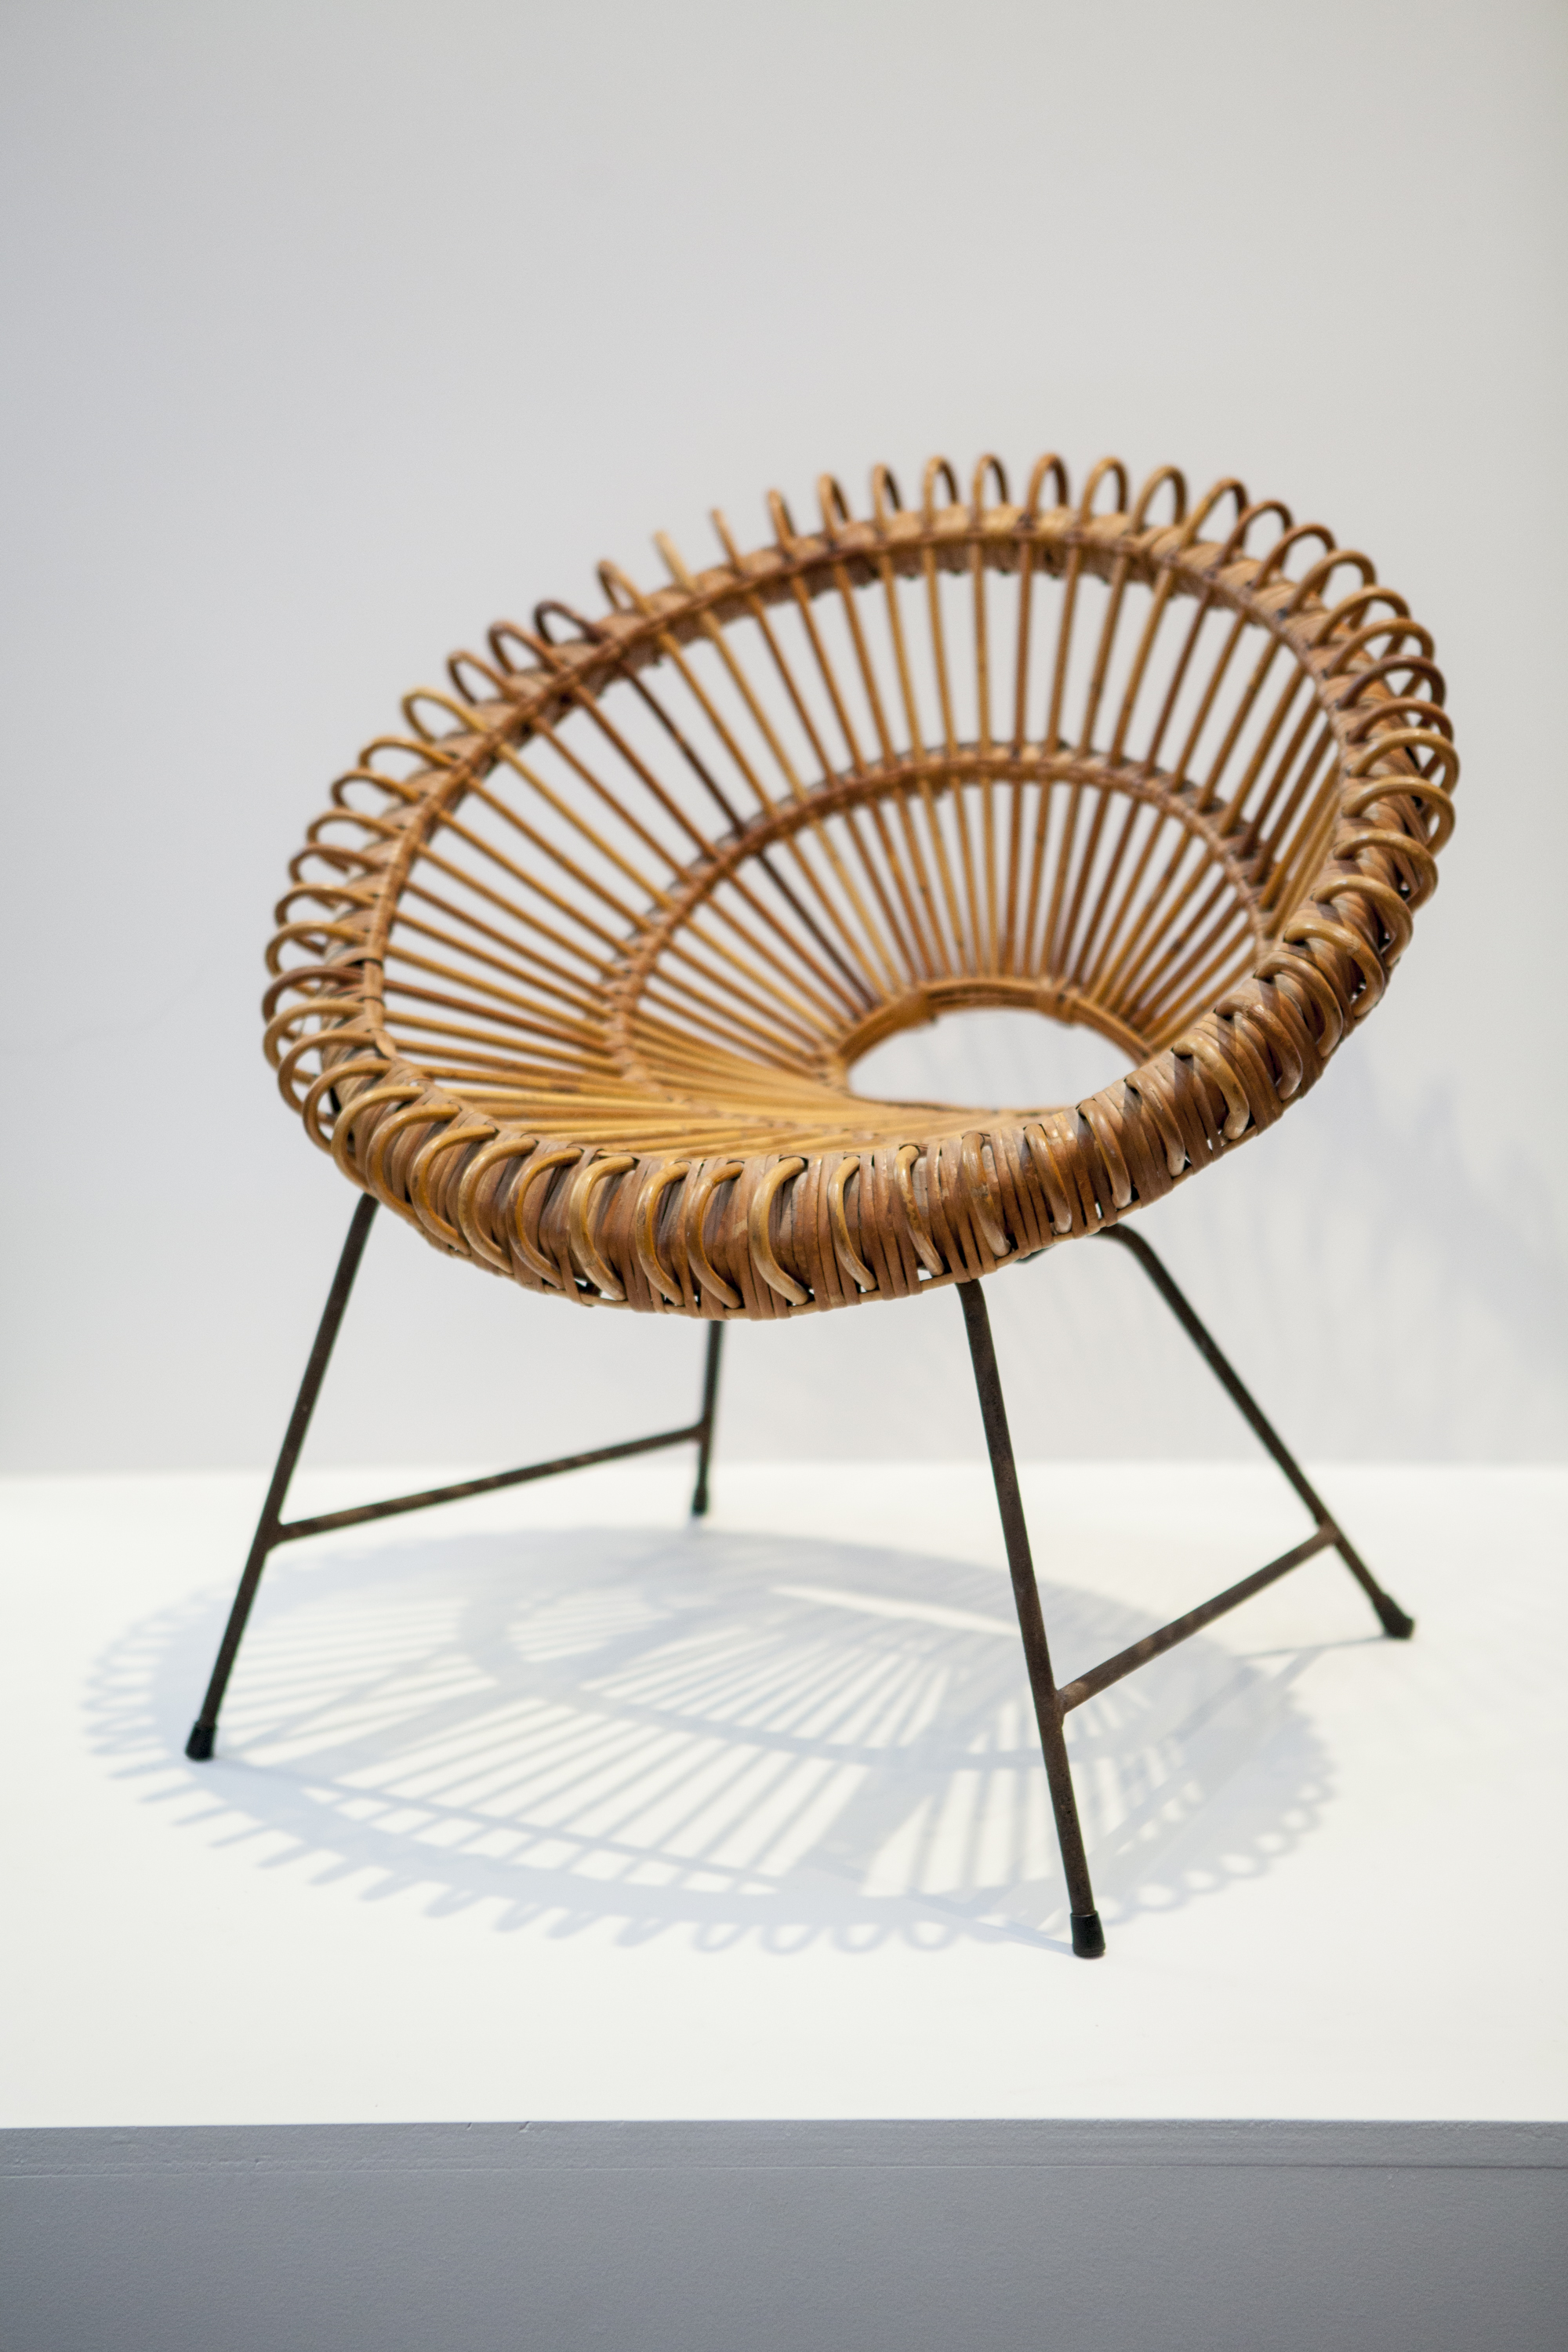 A vintage 1950s Italian Round Rattan Albini Chair